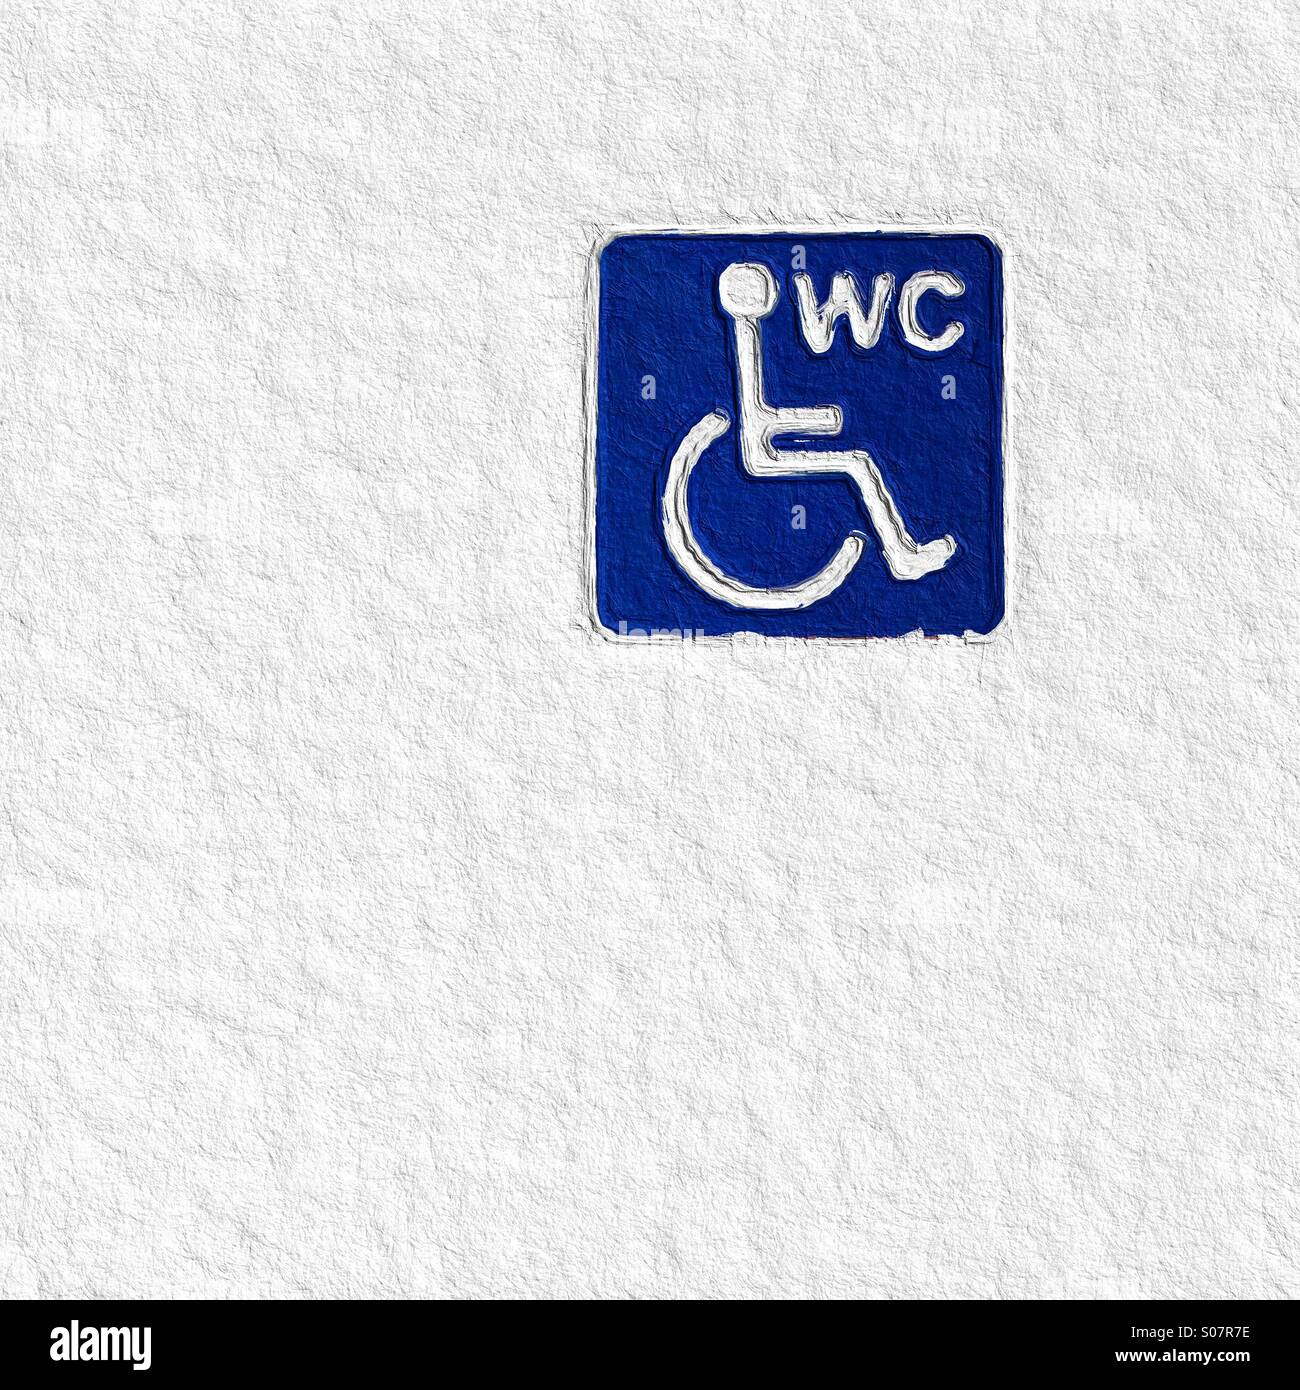 Disabled WC sign - Stock Image